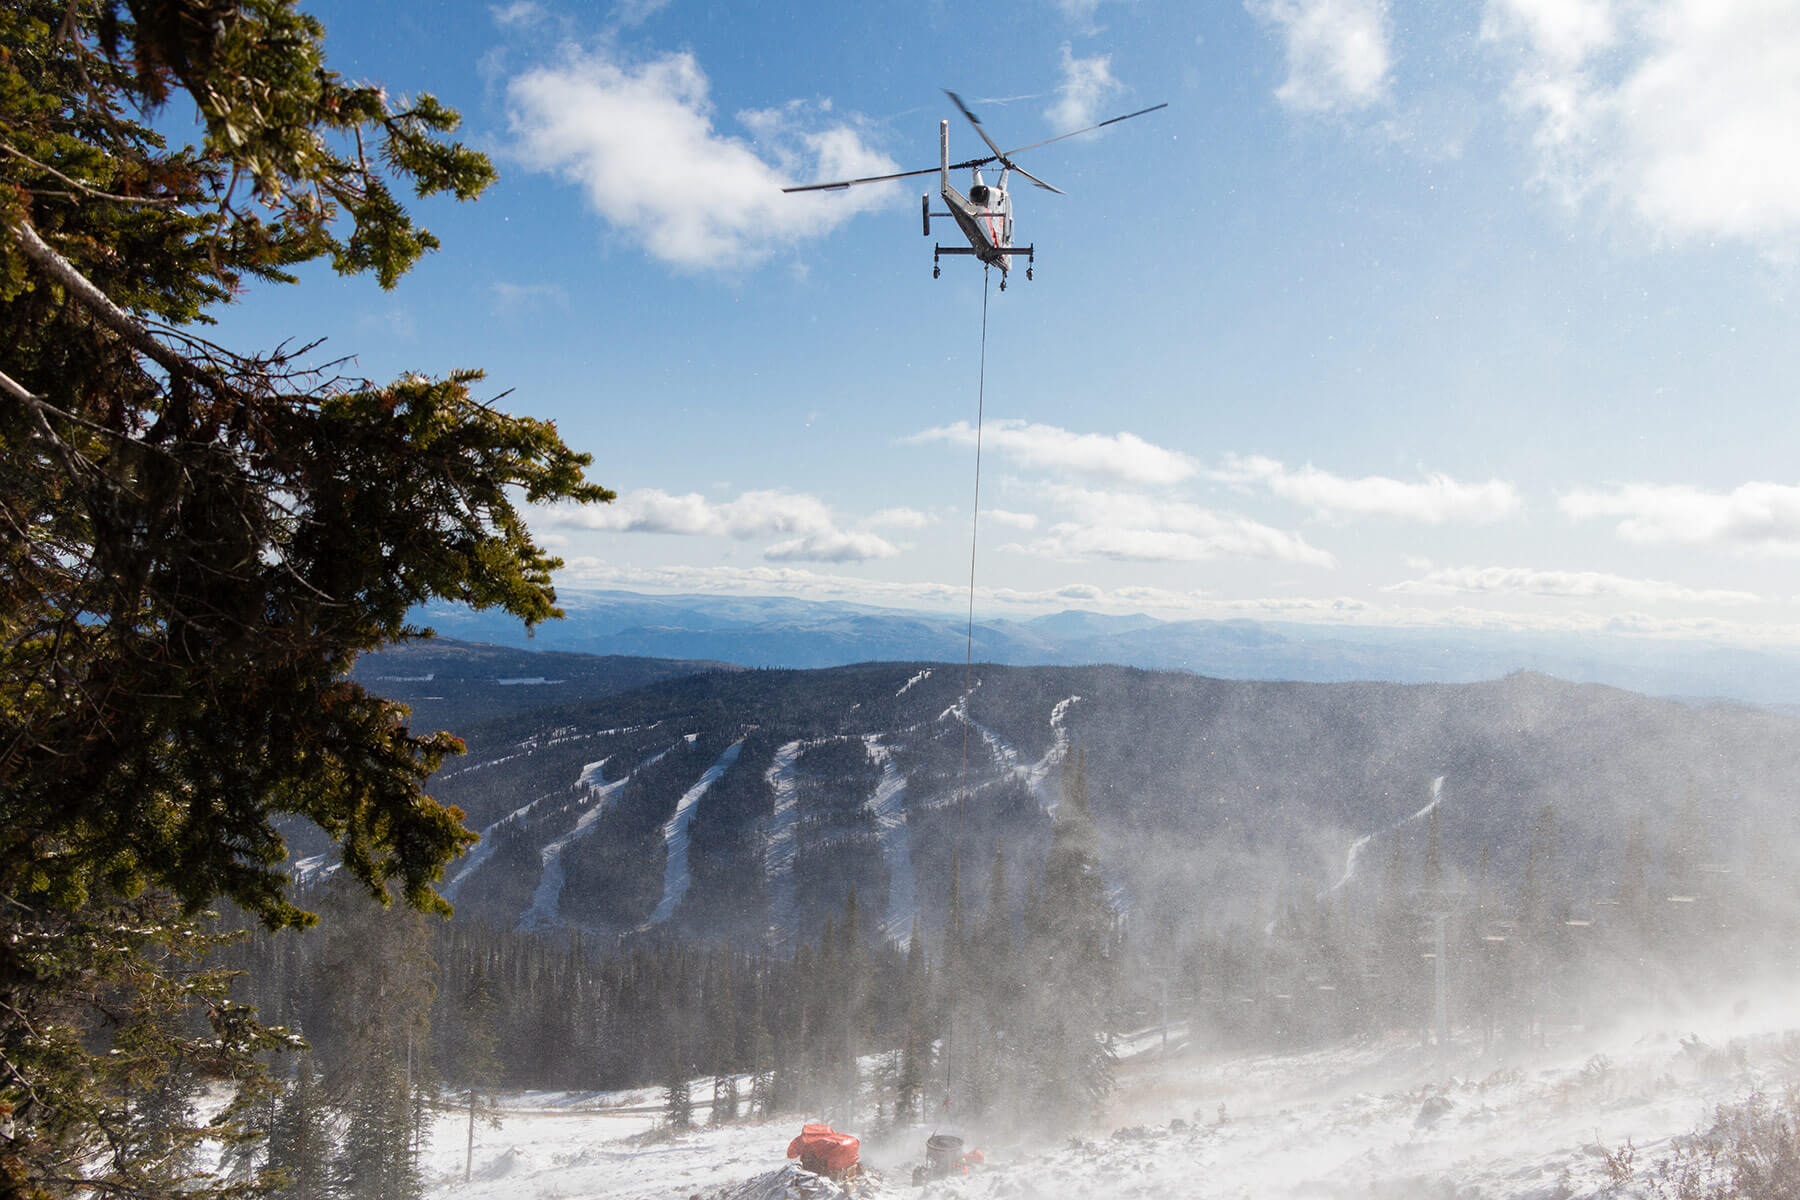 Construction of the New Crystal Chairlift at Sun Peaks Resort